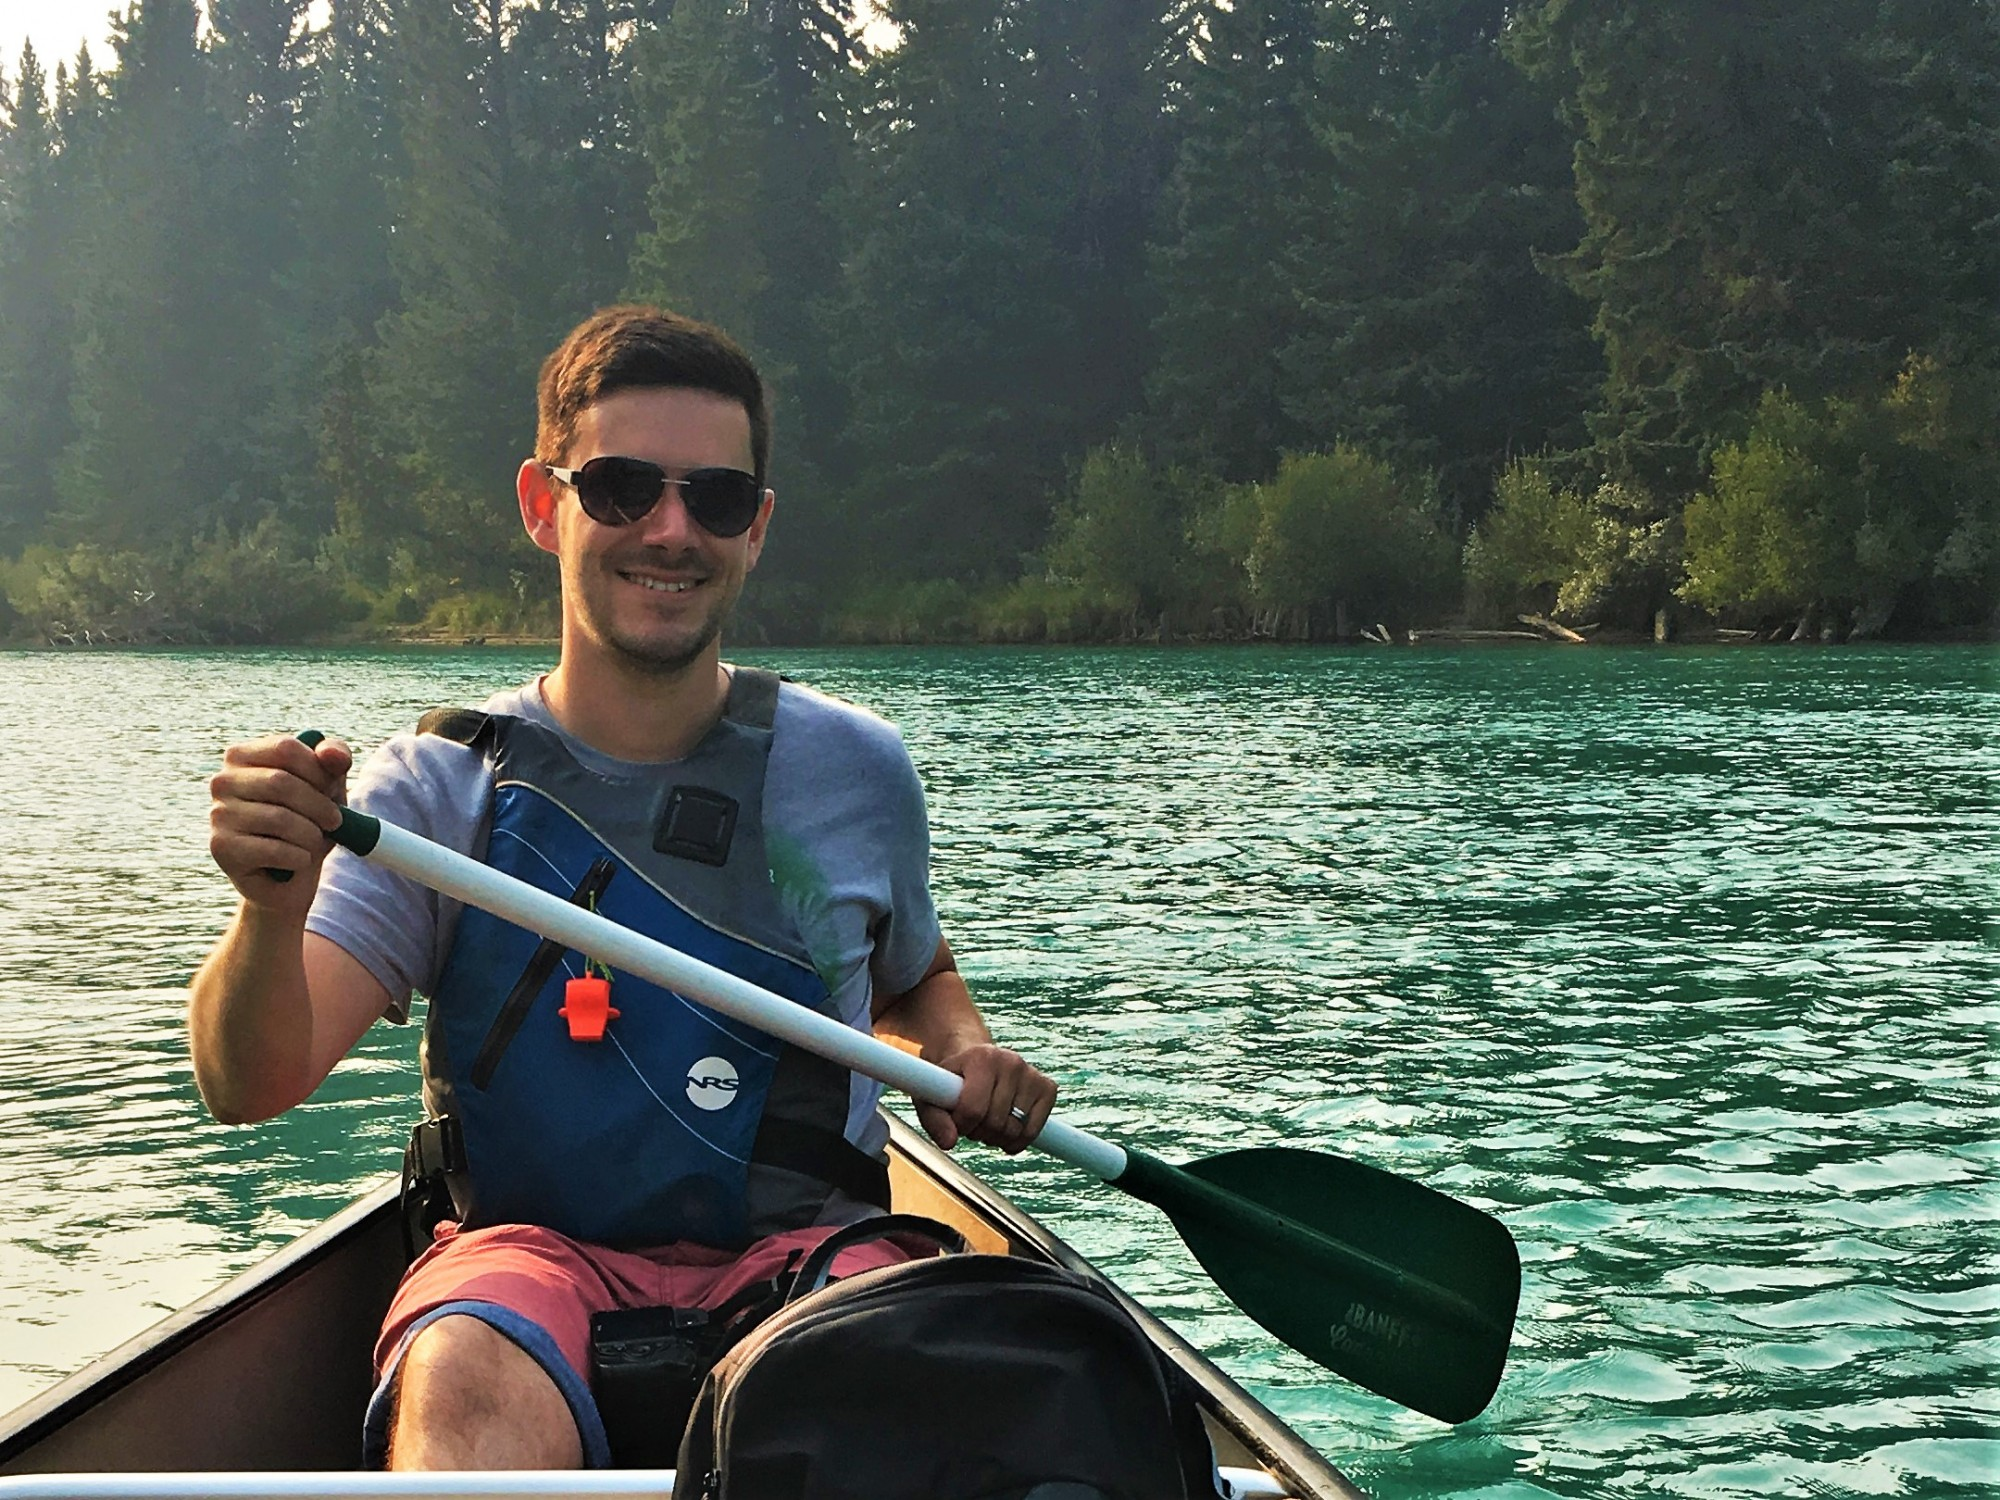 Nick canoeing the Bow River in Banff